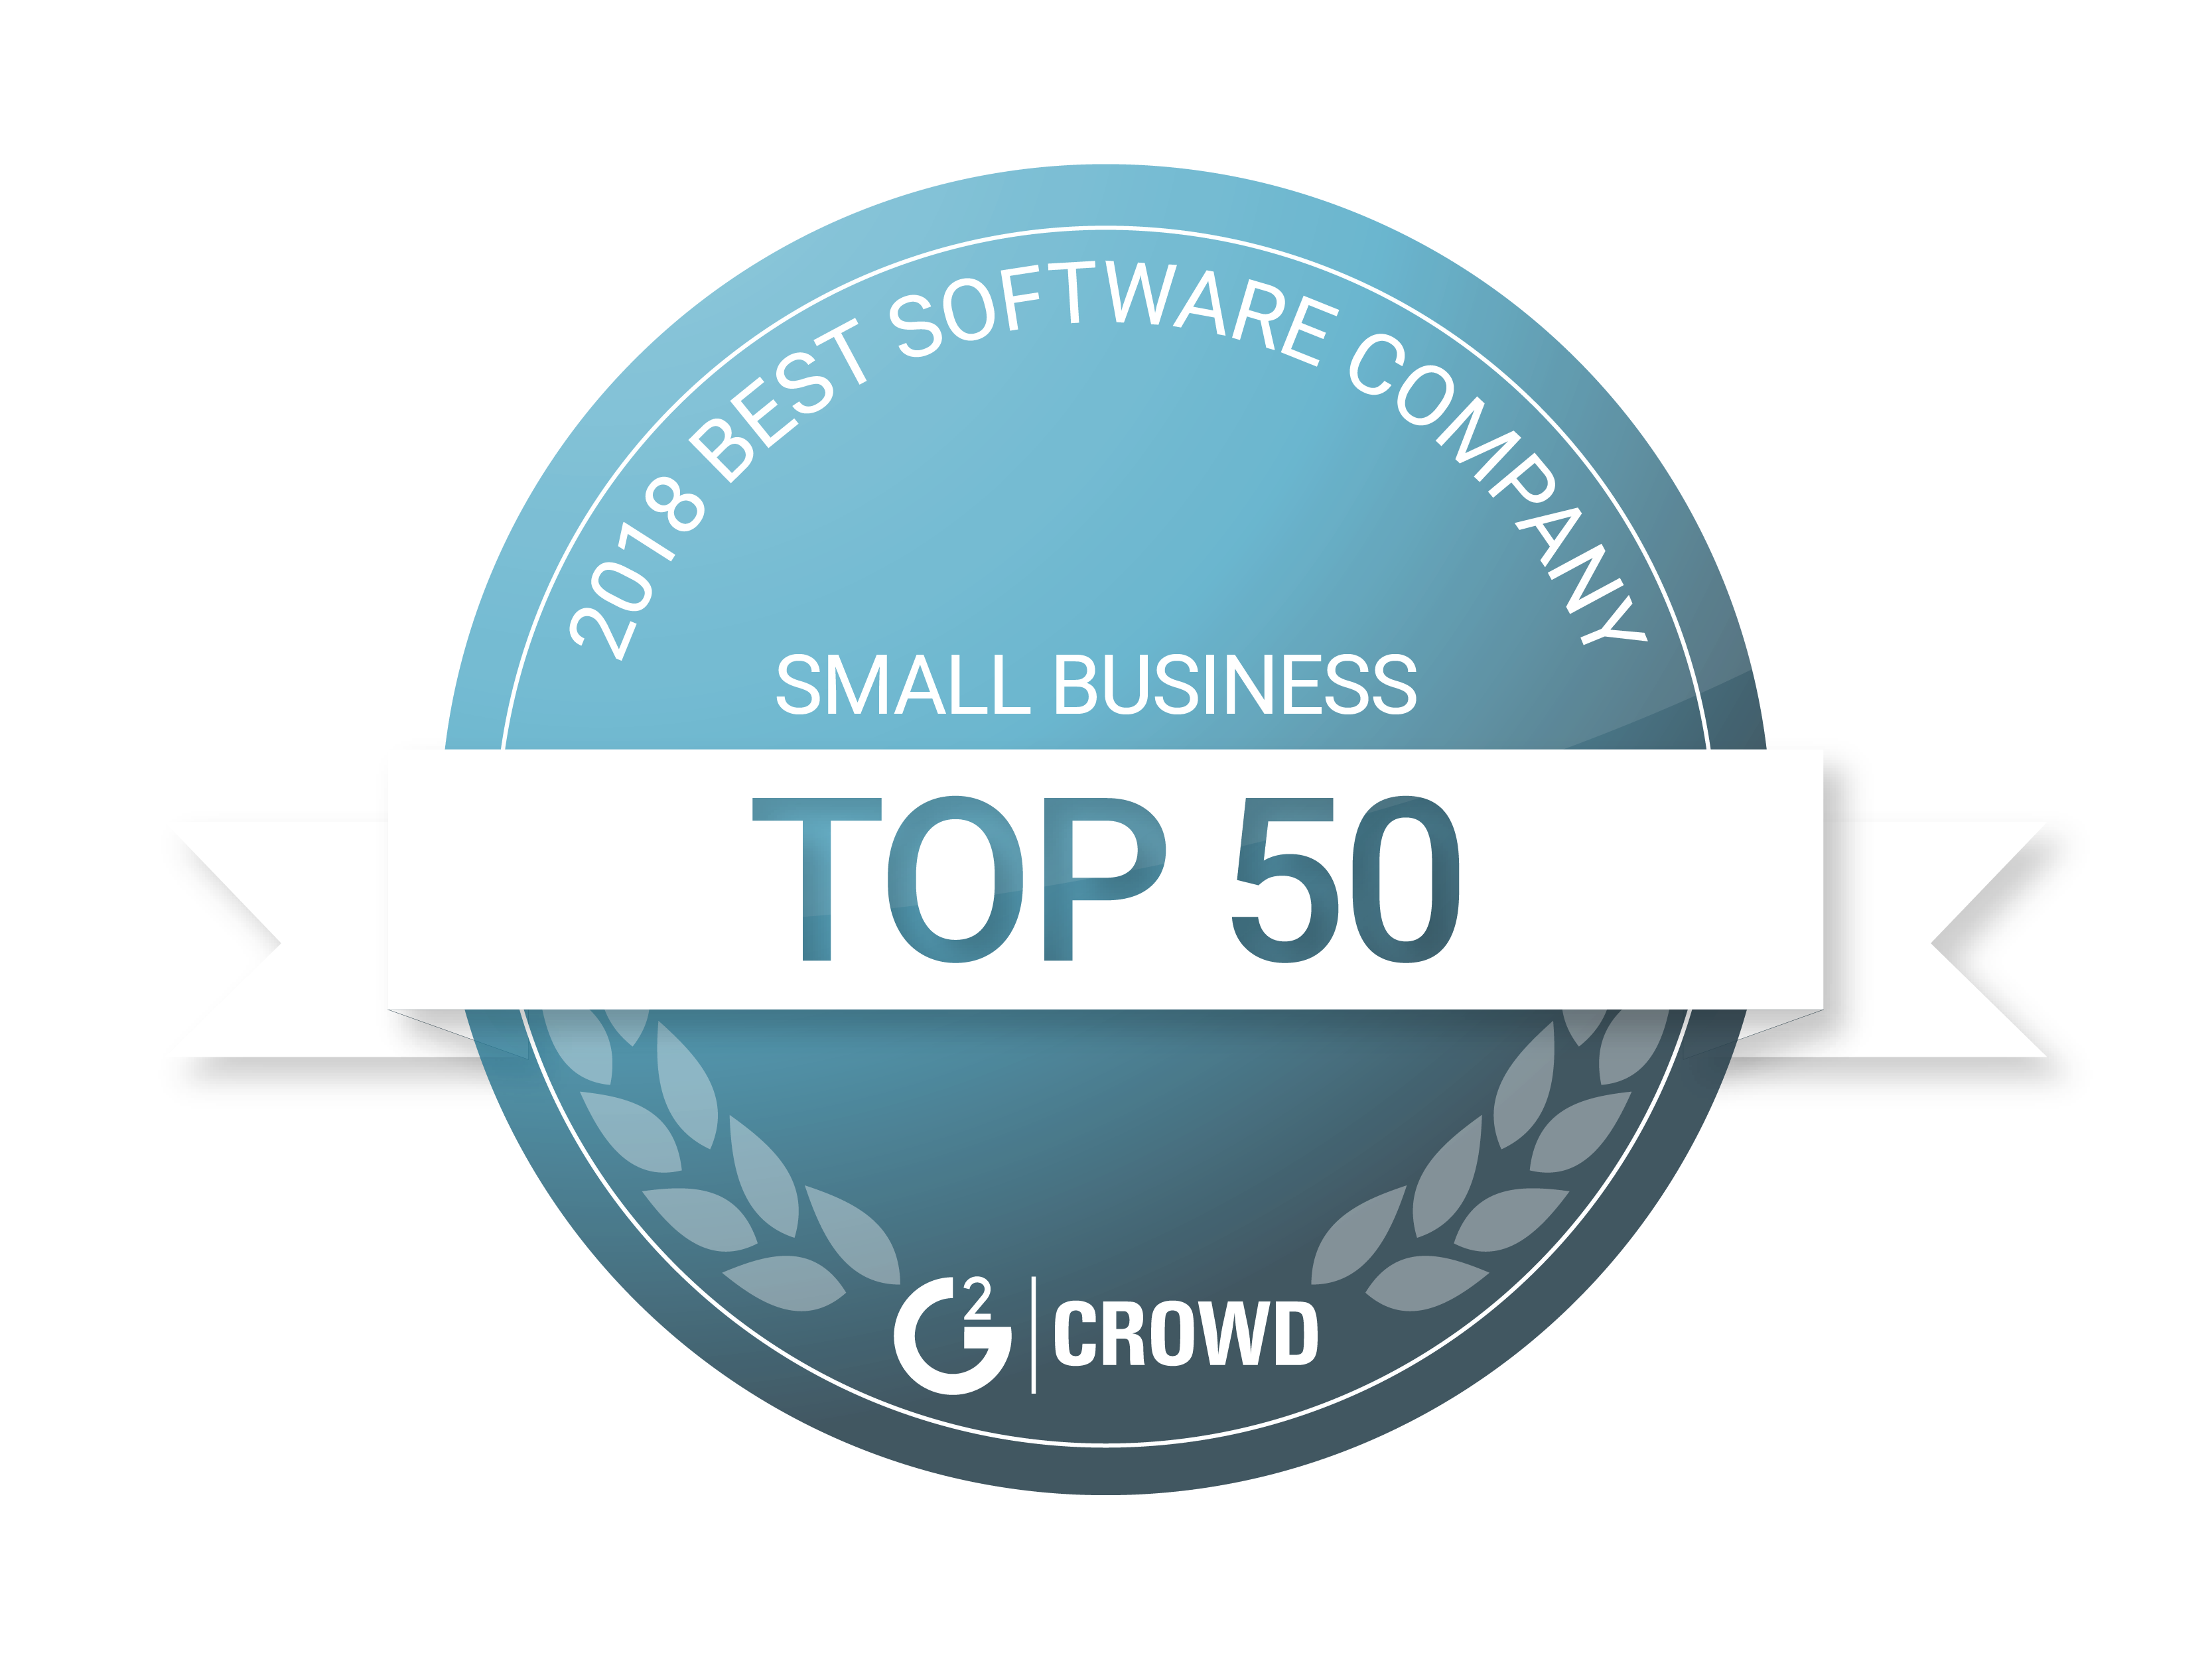 g2 crowd top 50 badge